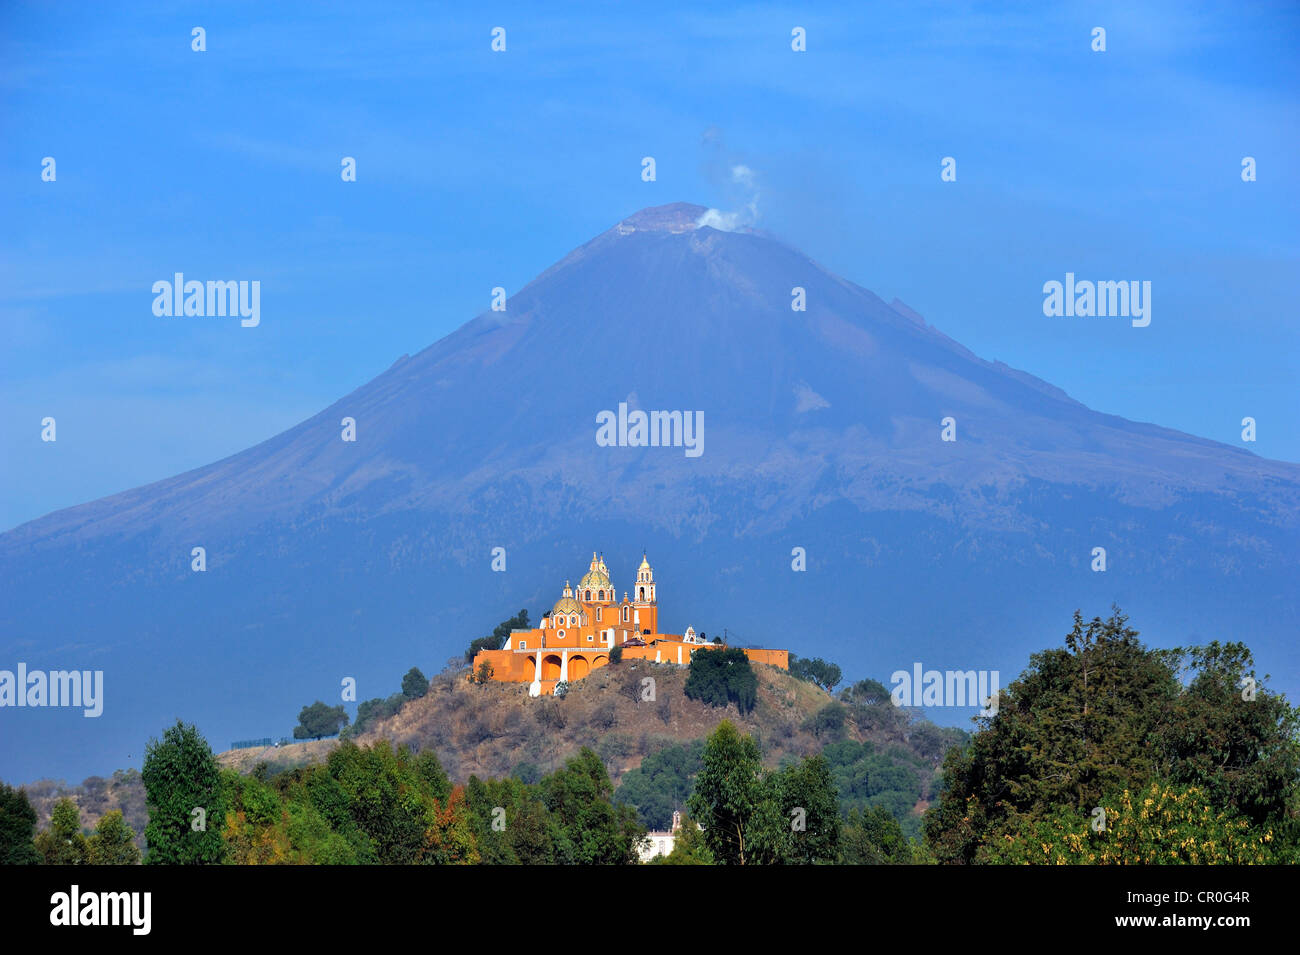 Church of Iglesia Nuestra Senora de los Remedios on the ruins of the pre-Hispanic Pyramid of Cholula in front of - Stock Image